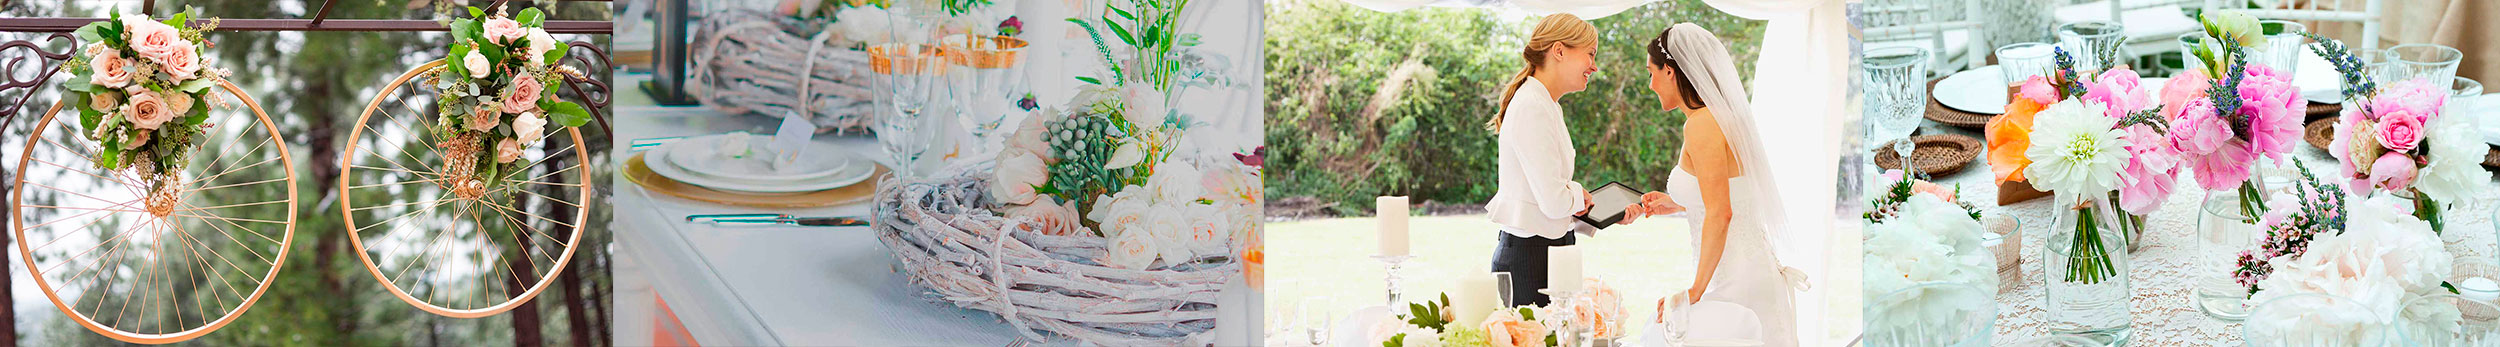 Wedding Mediterraneo | Carlos Villarin | Freelance Wordpress